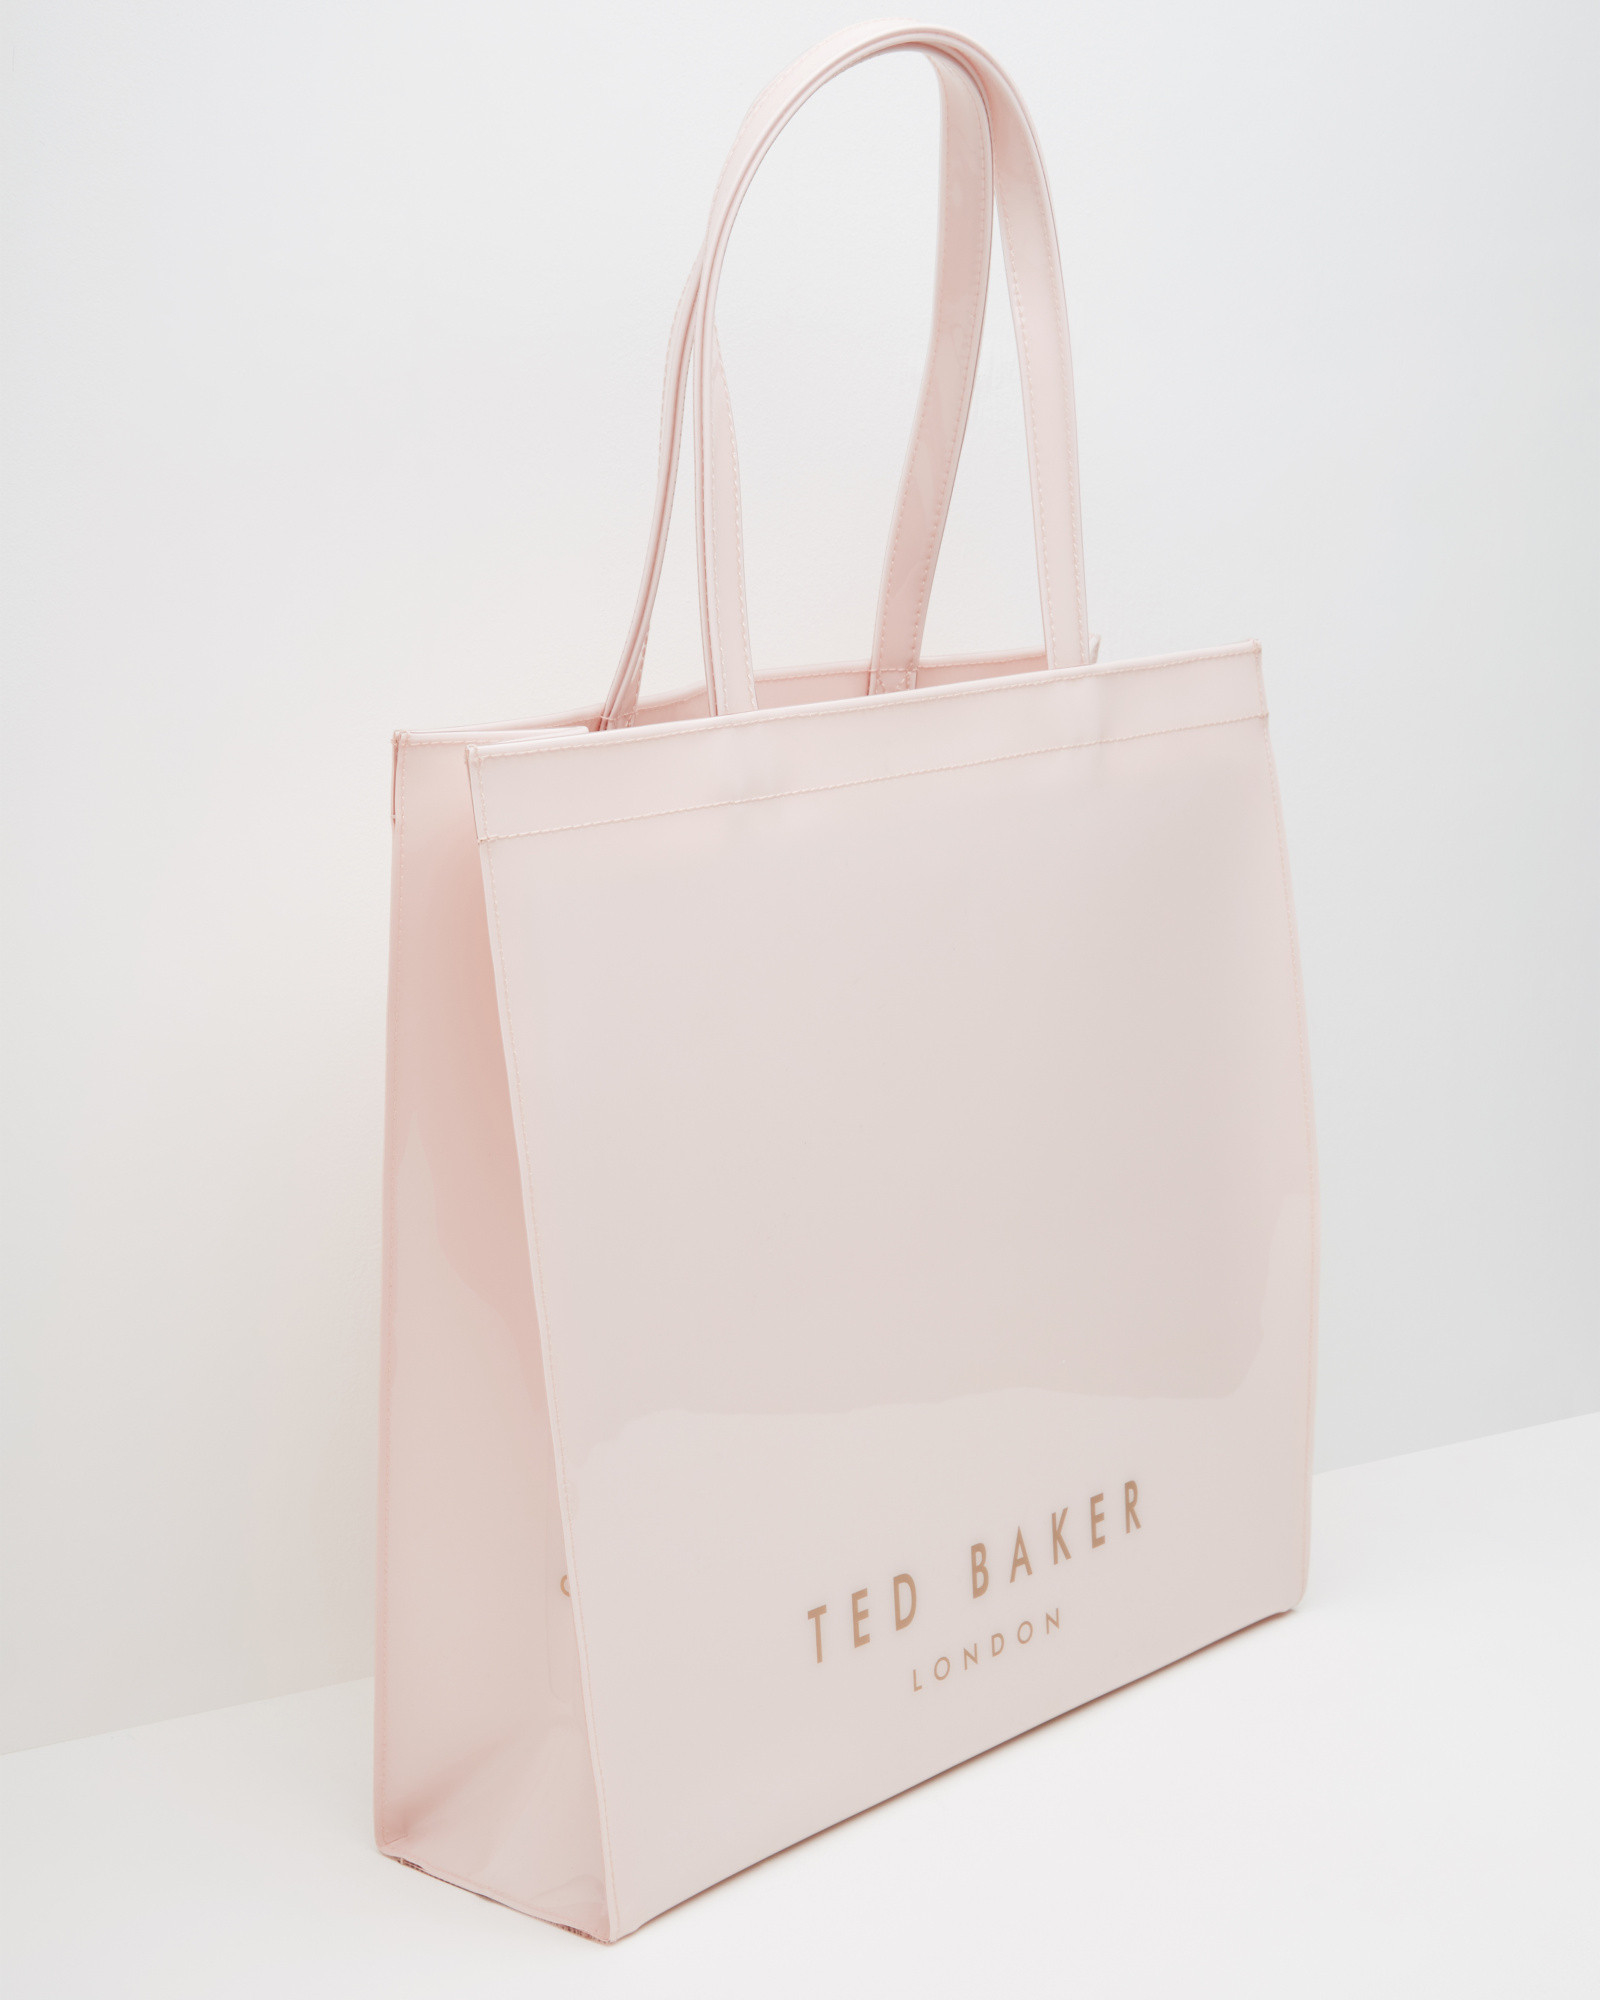 Ted Baker Bow Detail Large Shopper Bag in Pink - Lyst 41c76e5a8